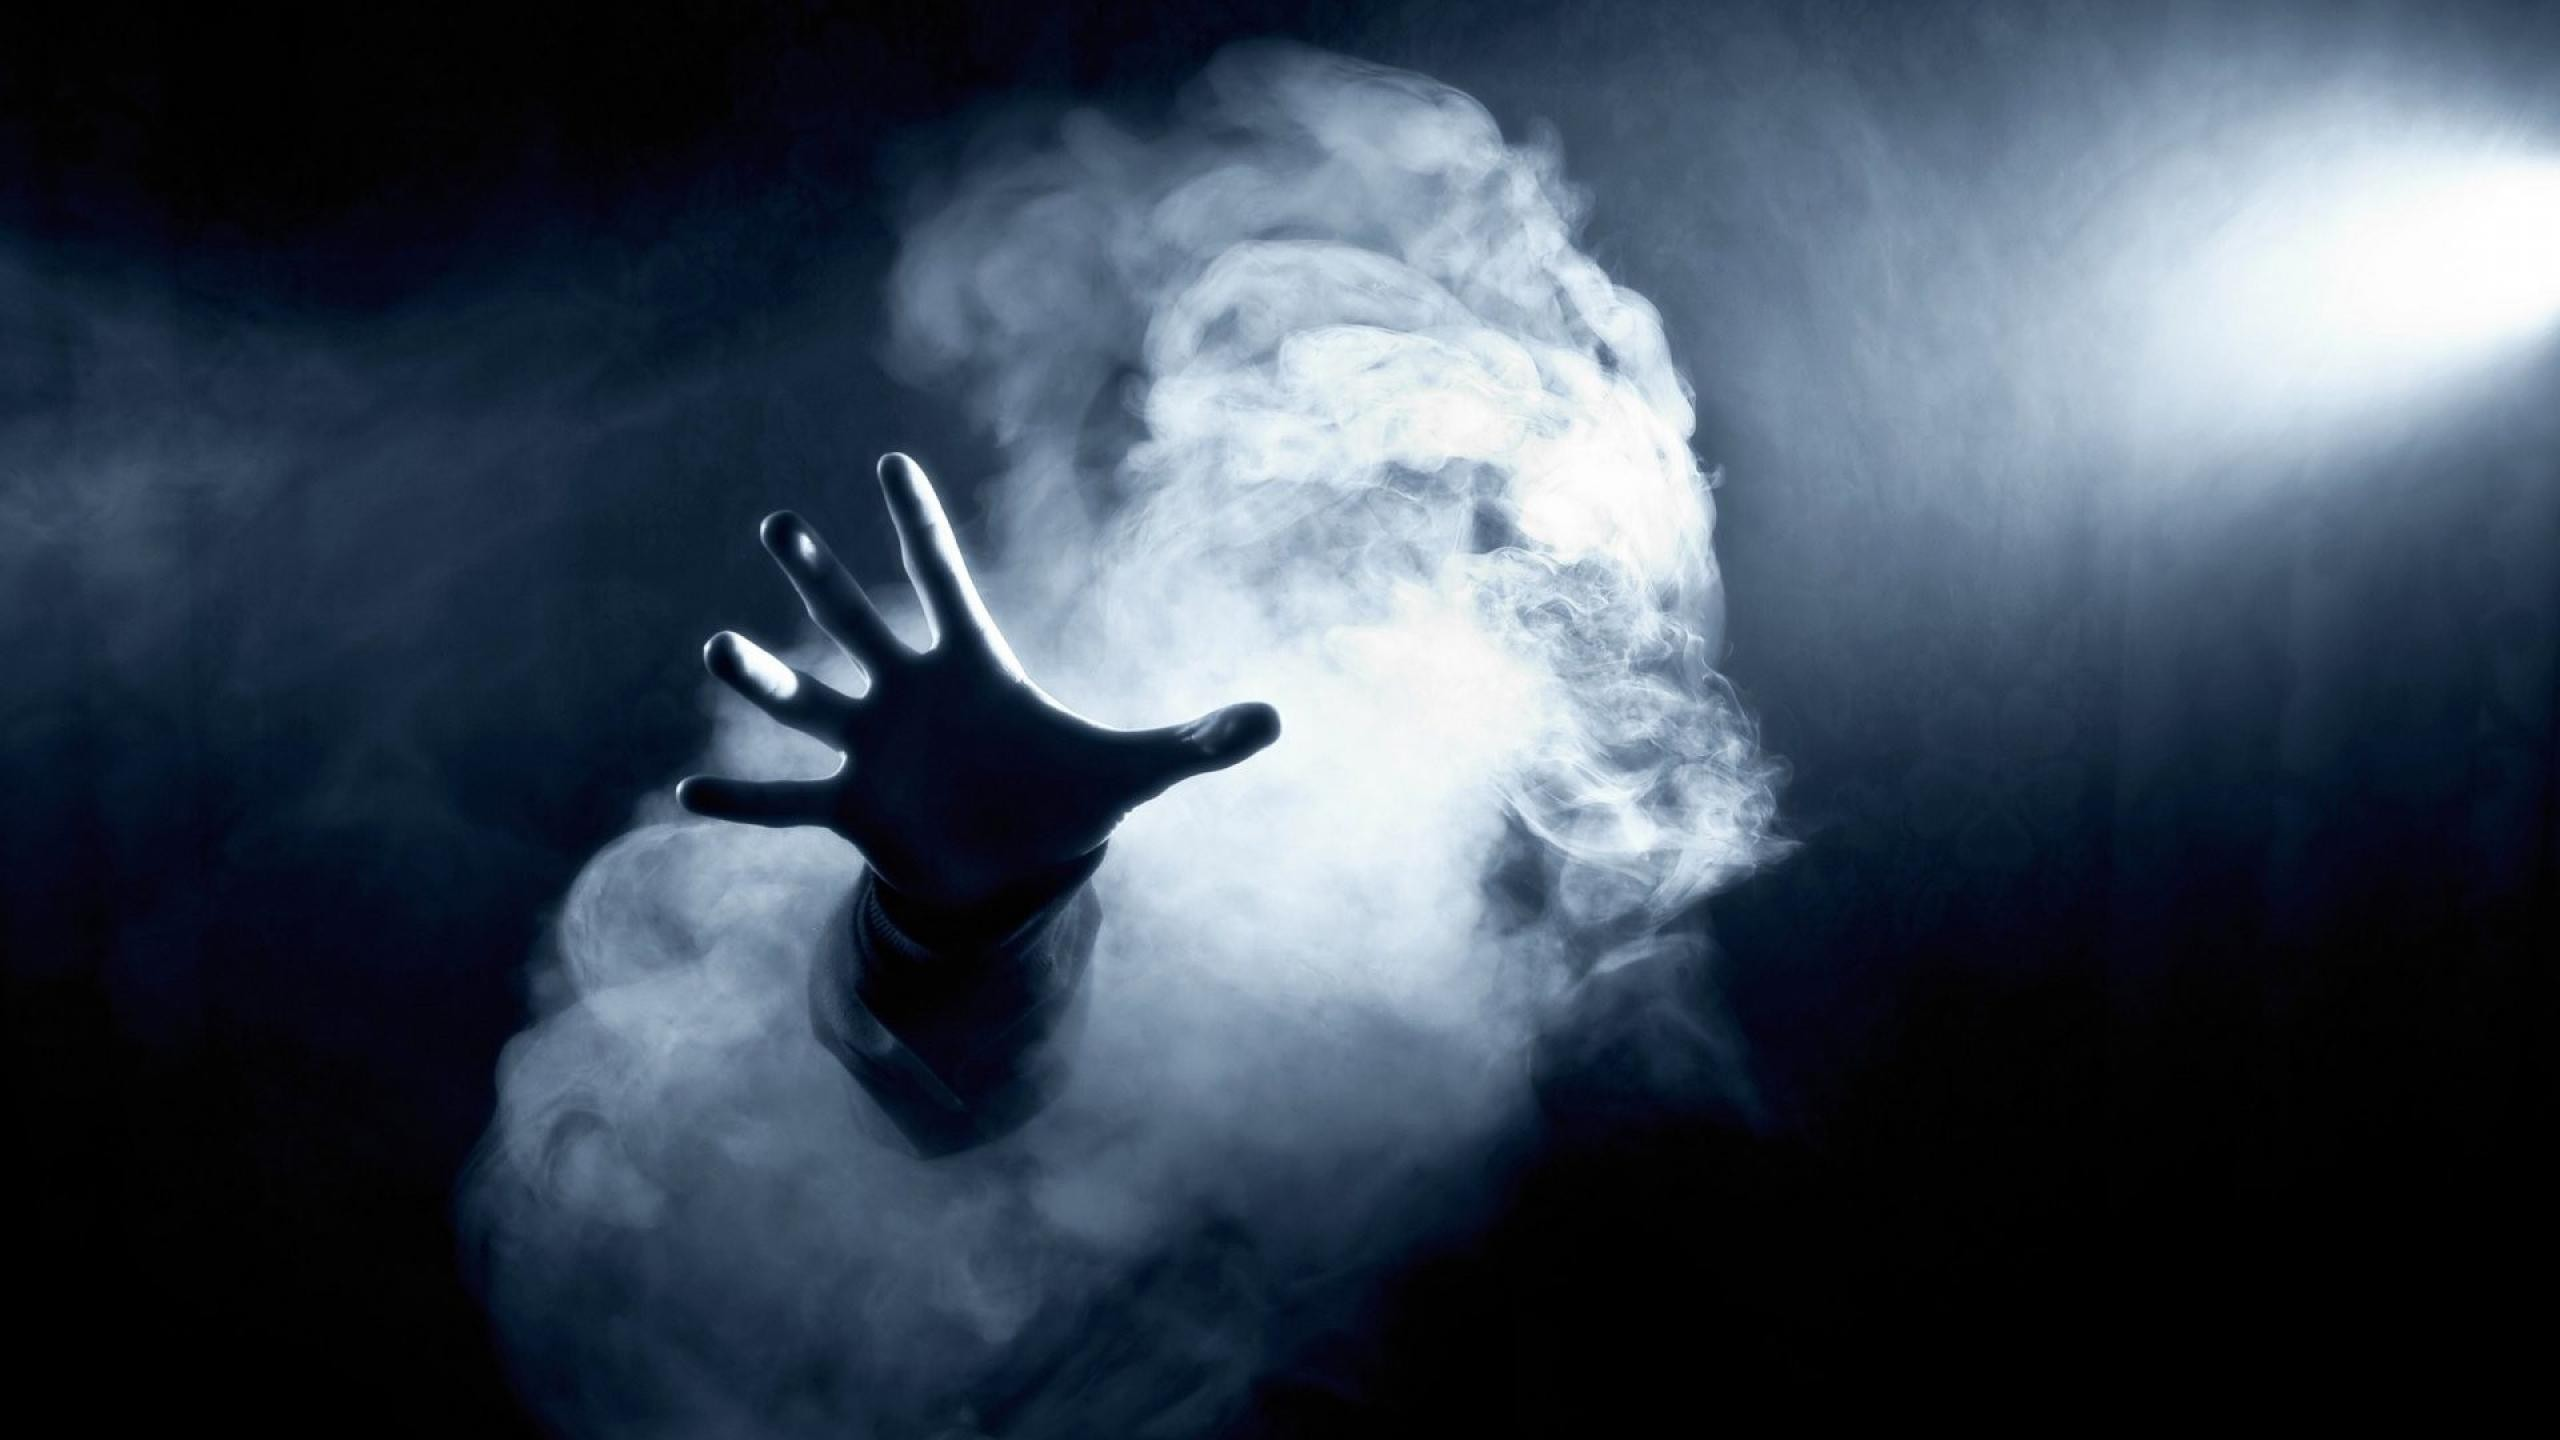 World's Top 10 Most Haunted Objects